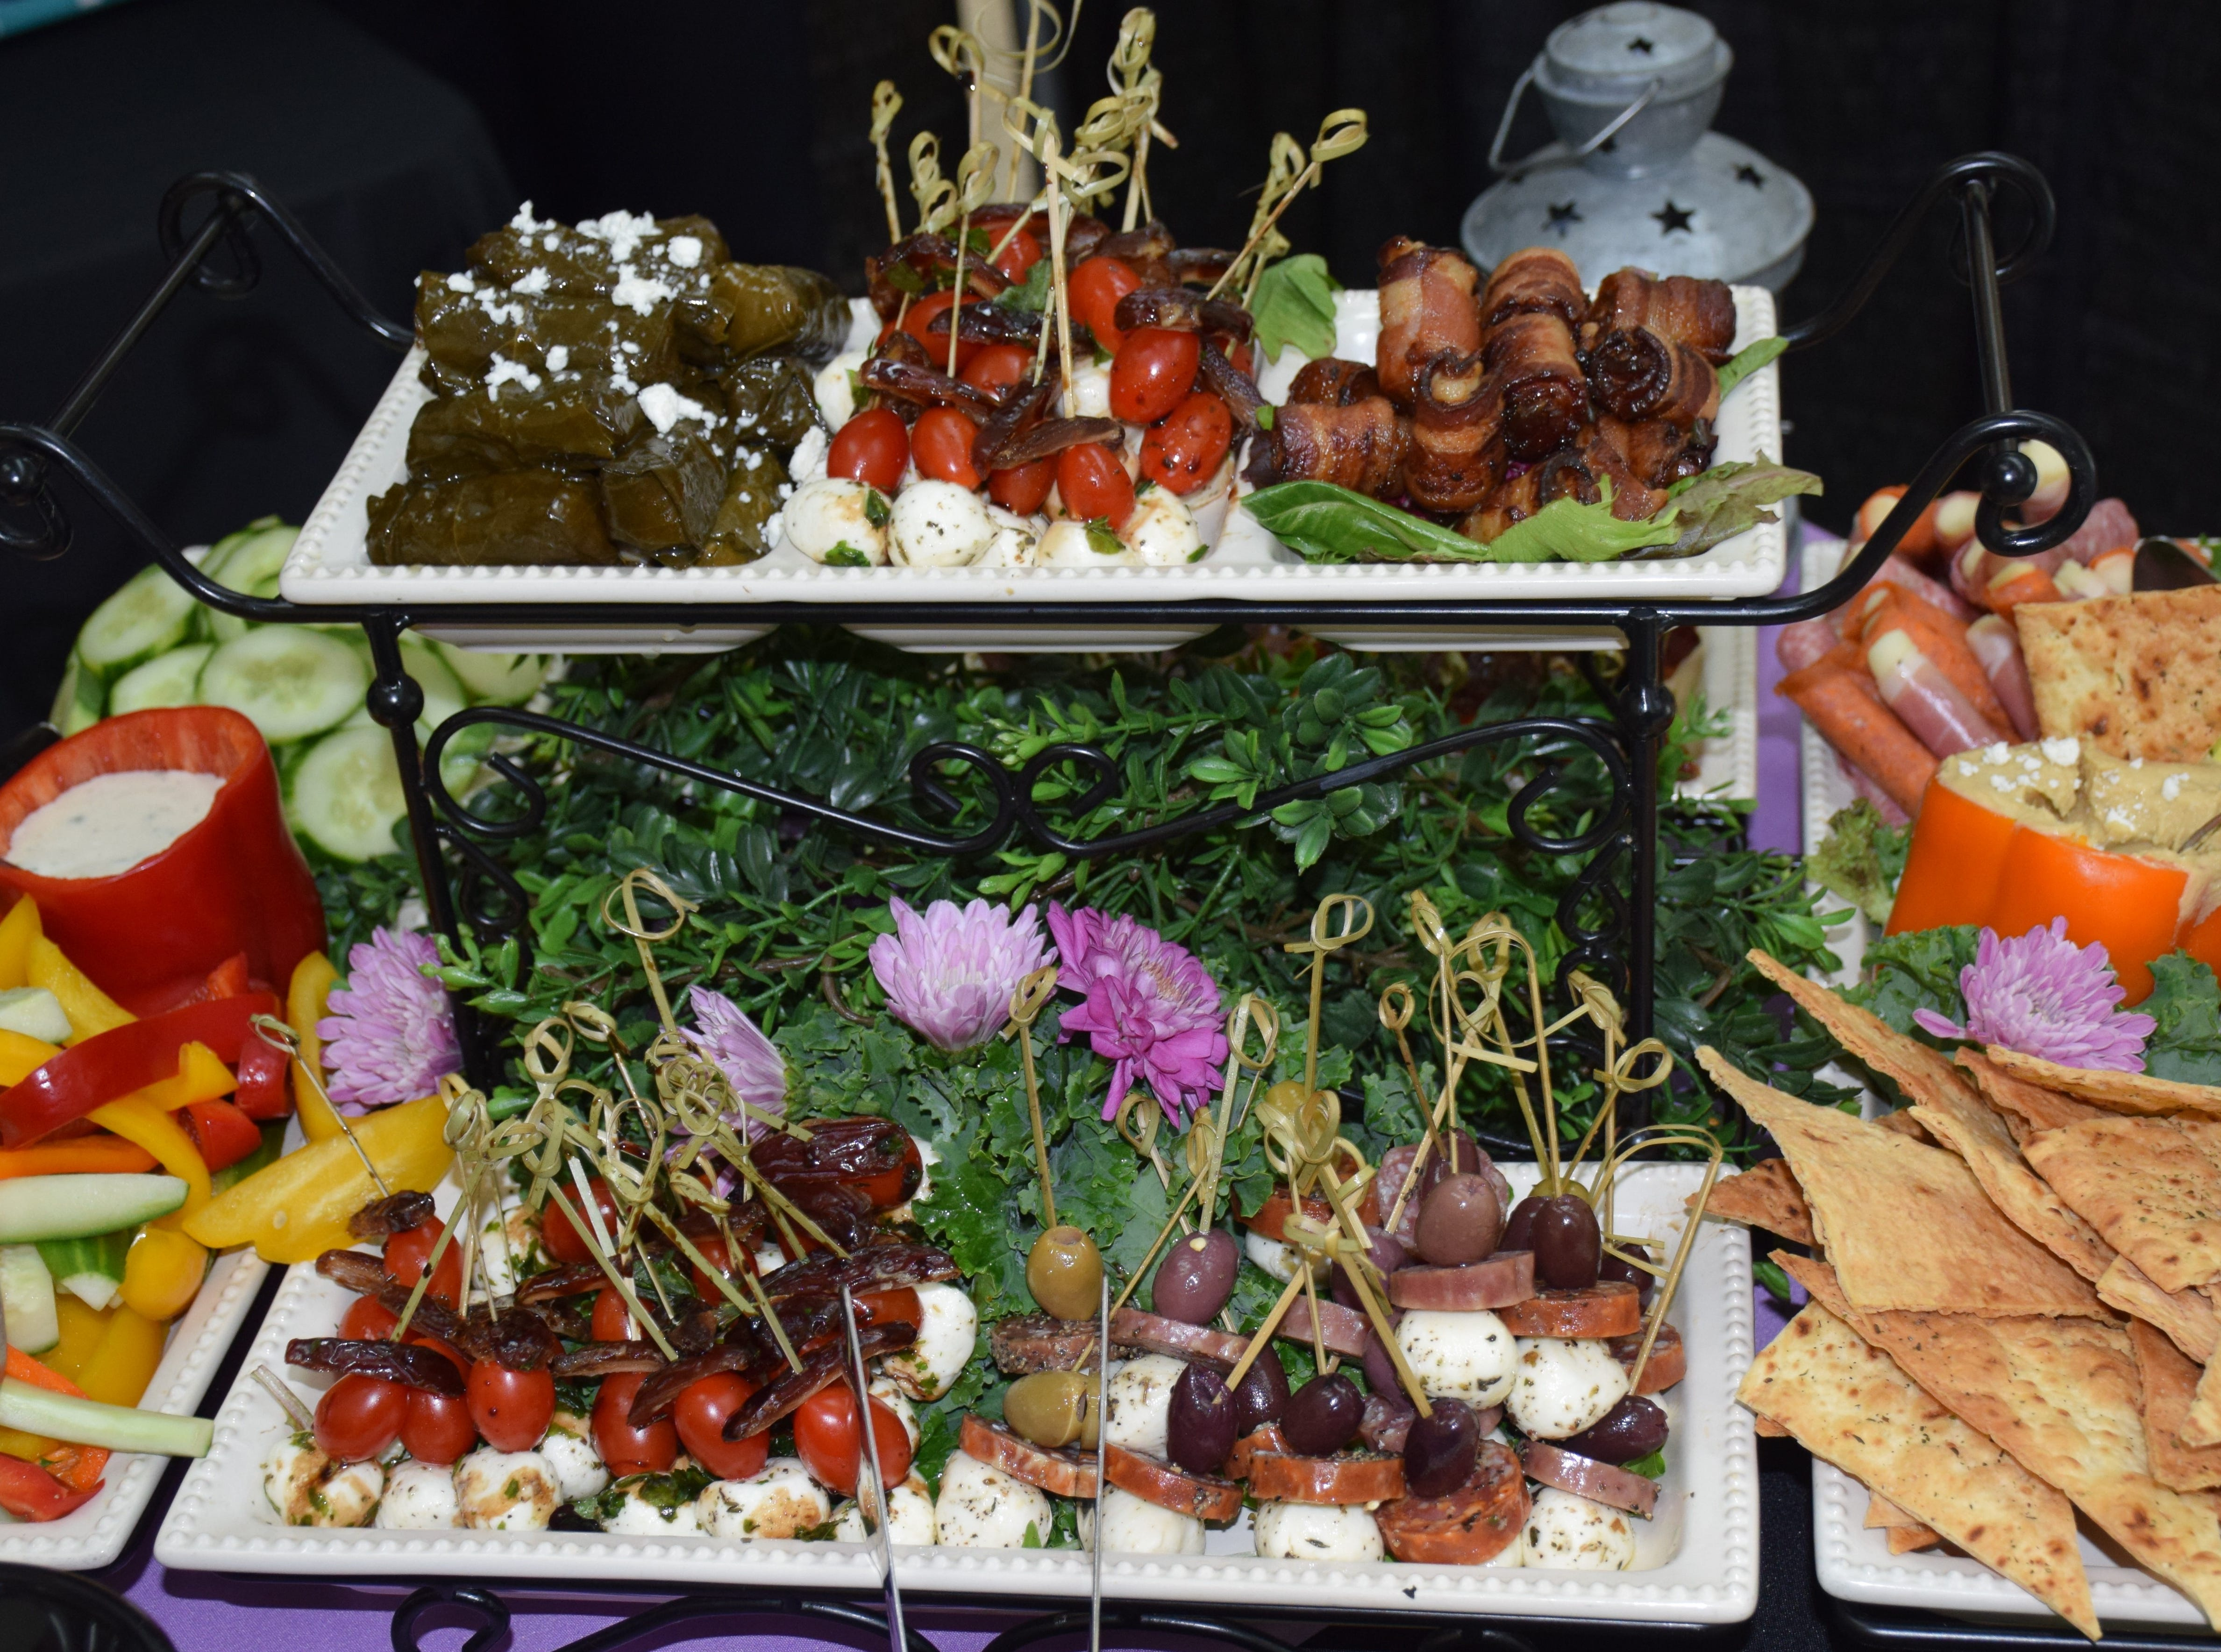 Food Platter Display By Wild Thyme catering.